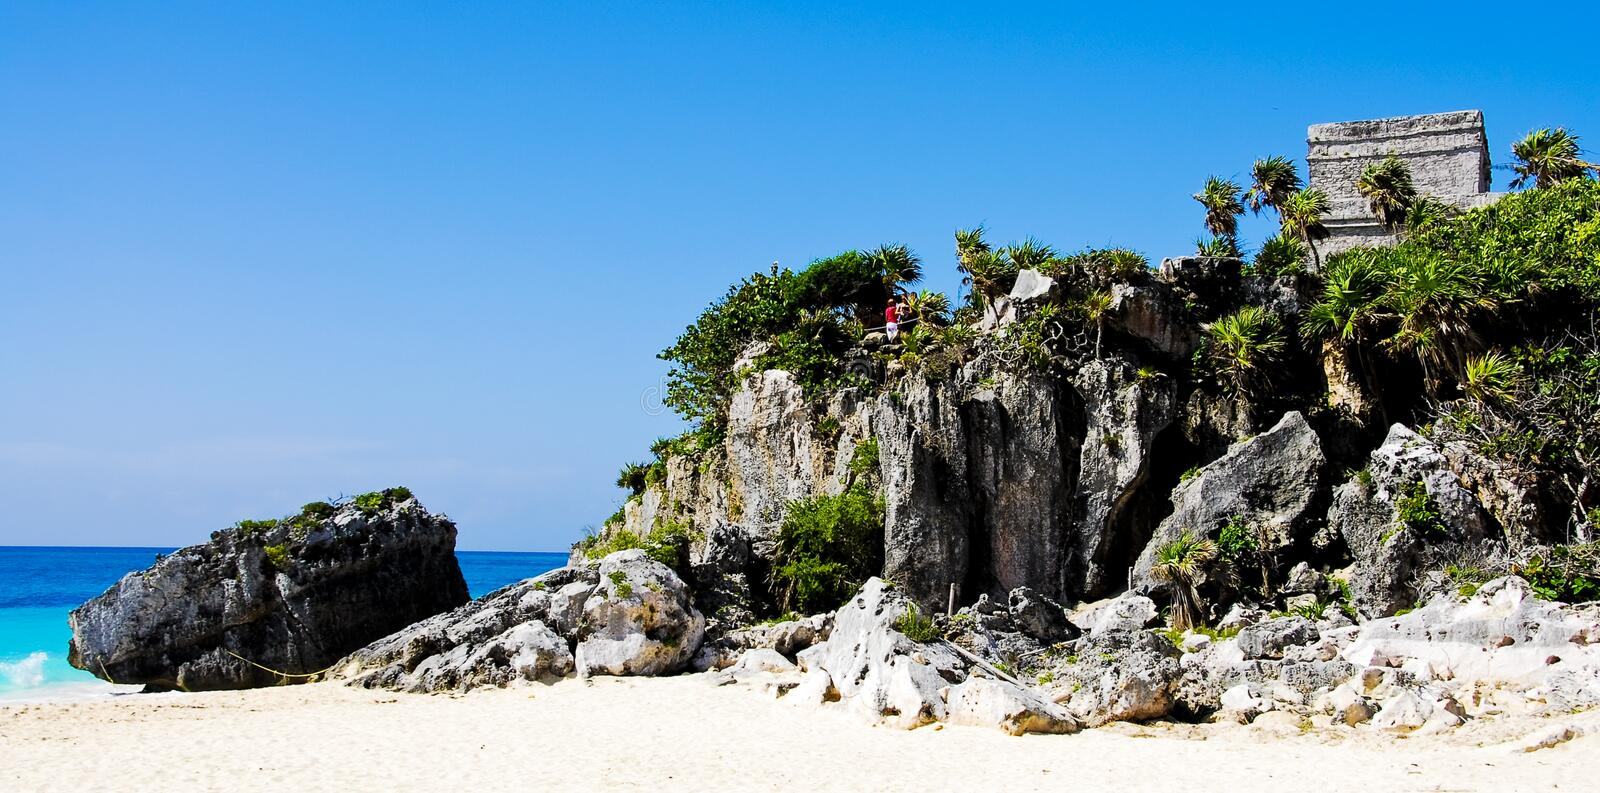 Mayan Tulum Ruins. Tulum Ruins in Mexico on the Beach. White sandy beach and crystal blue ocean with the ruins above on cliff royalty free stock photography